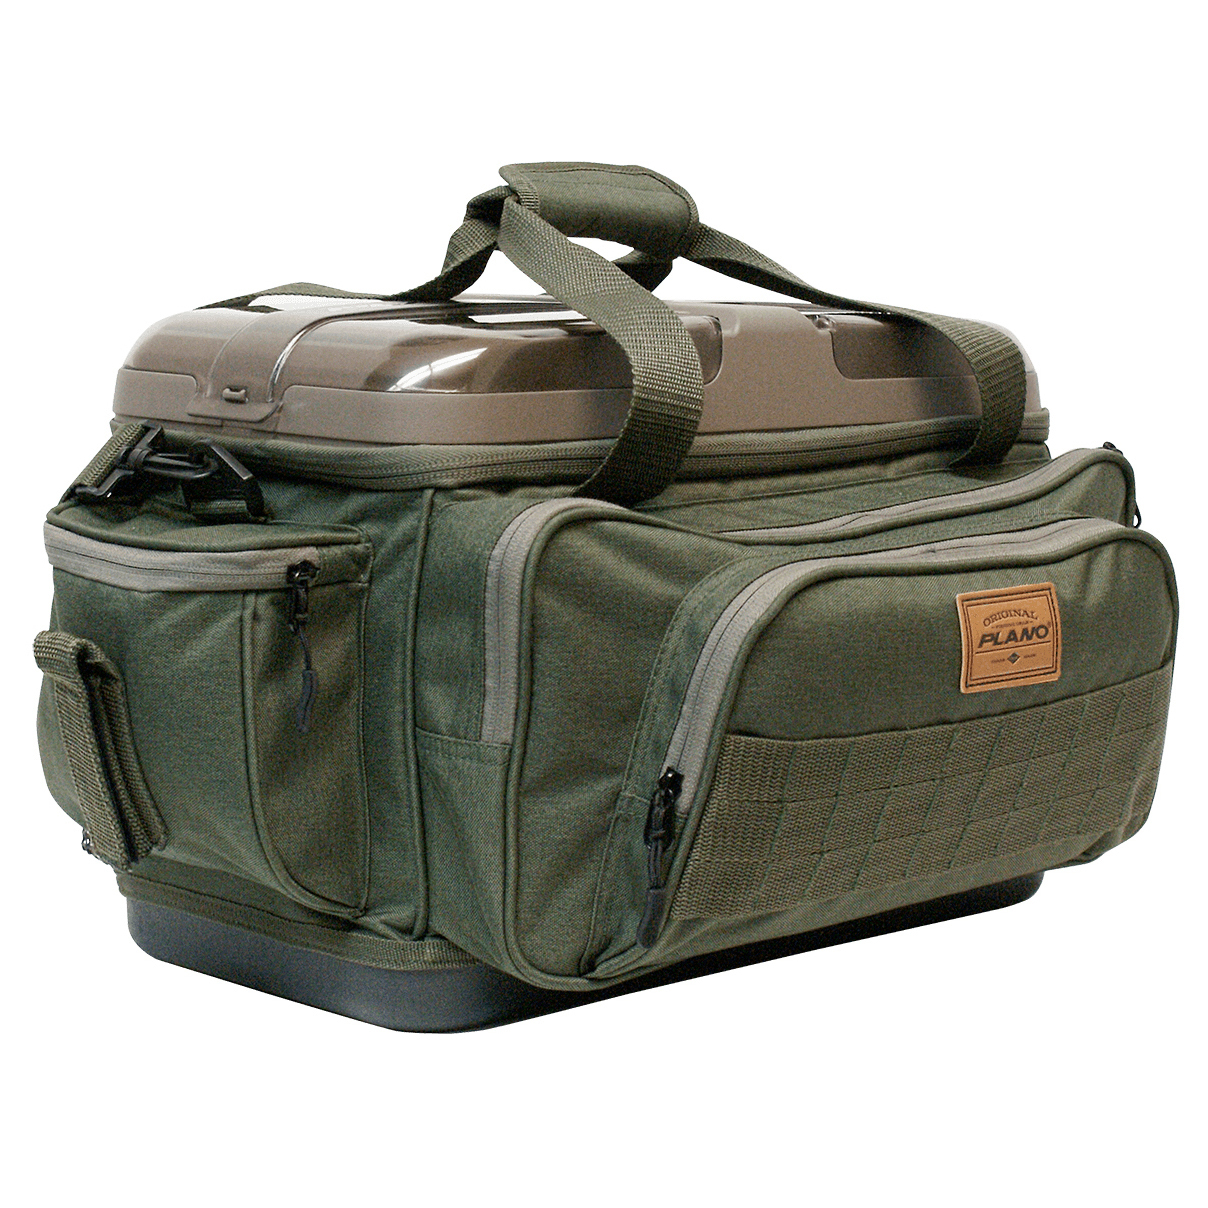 Plano A-Series 3700 Quick-Top Tackle Bag